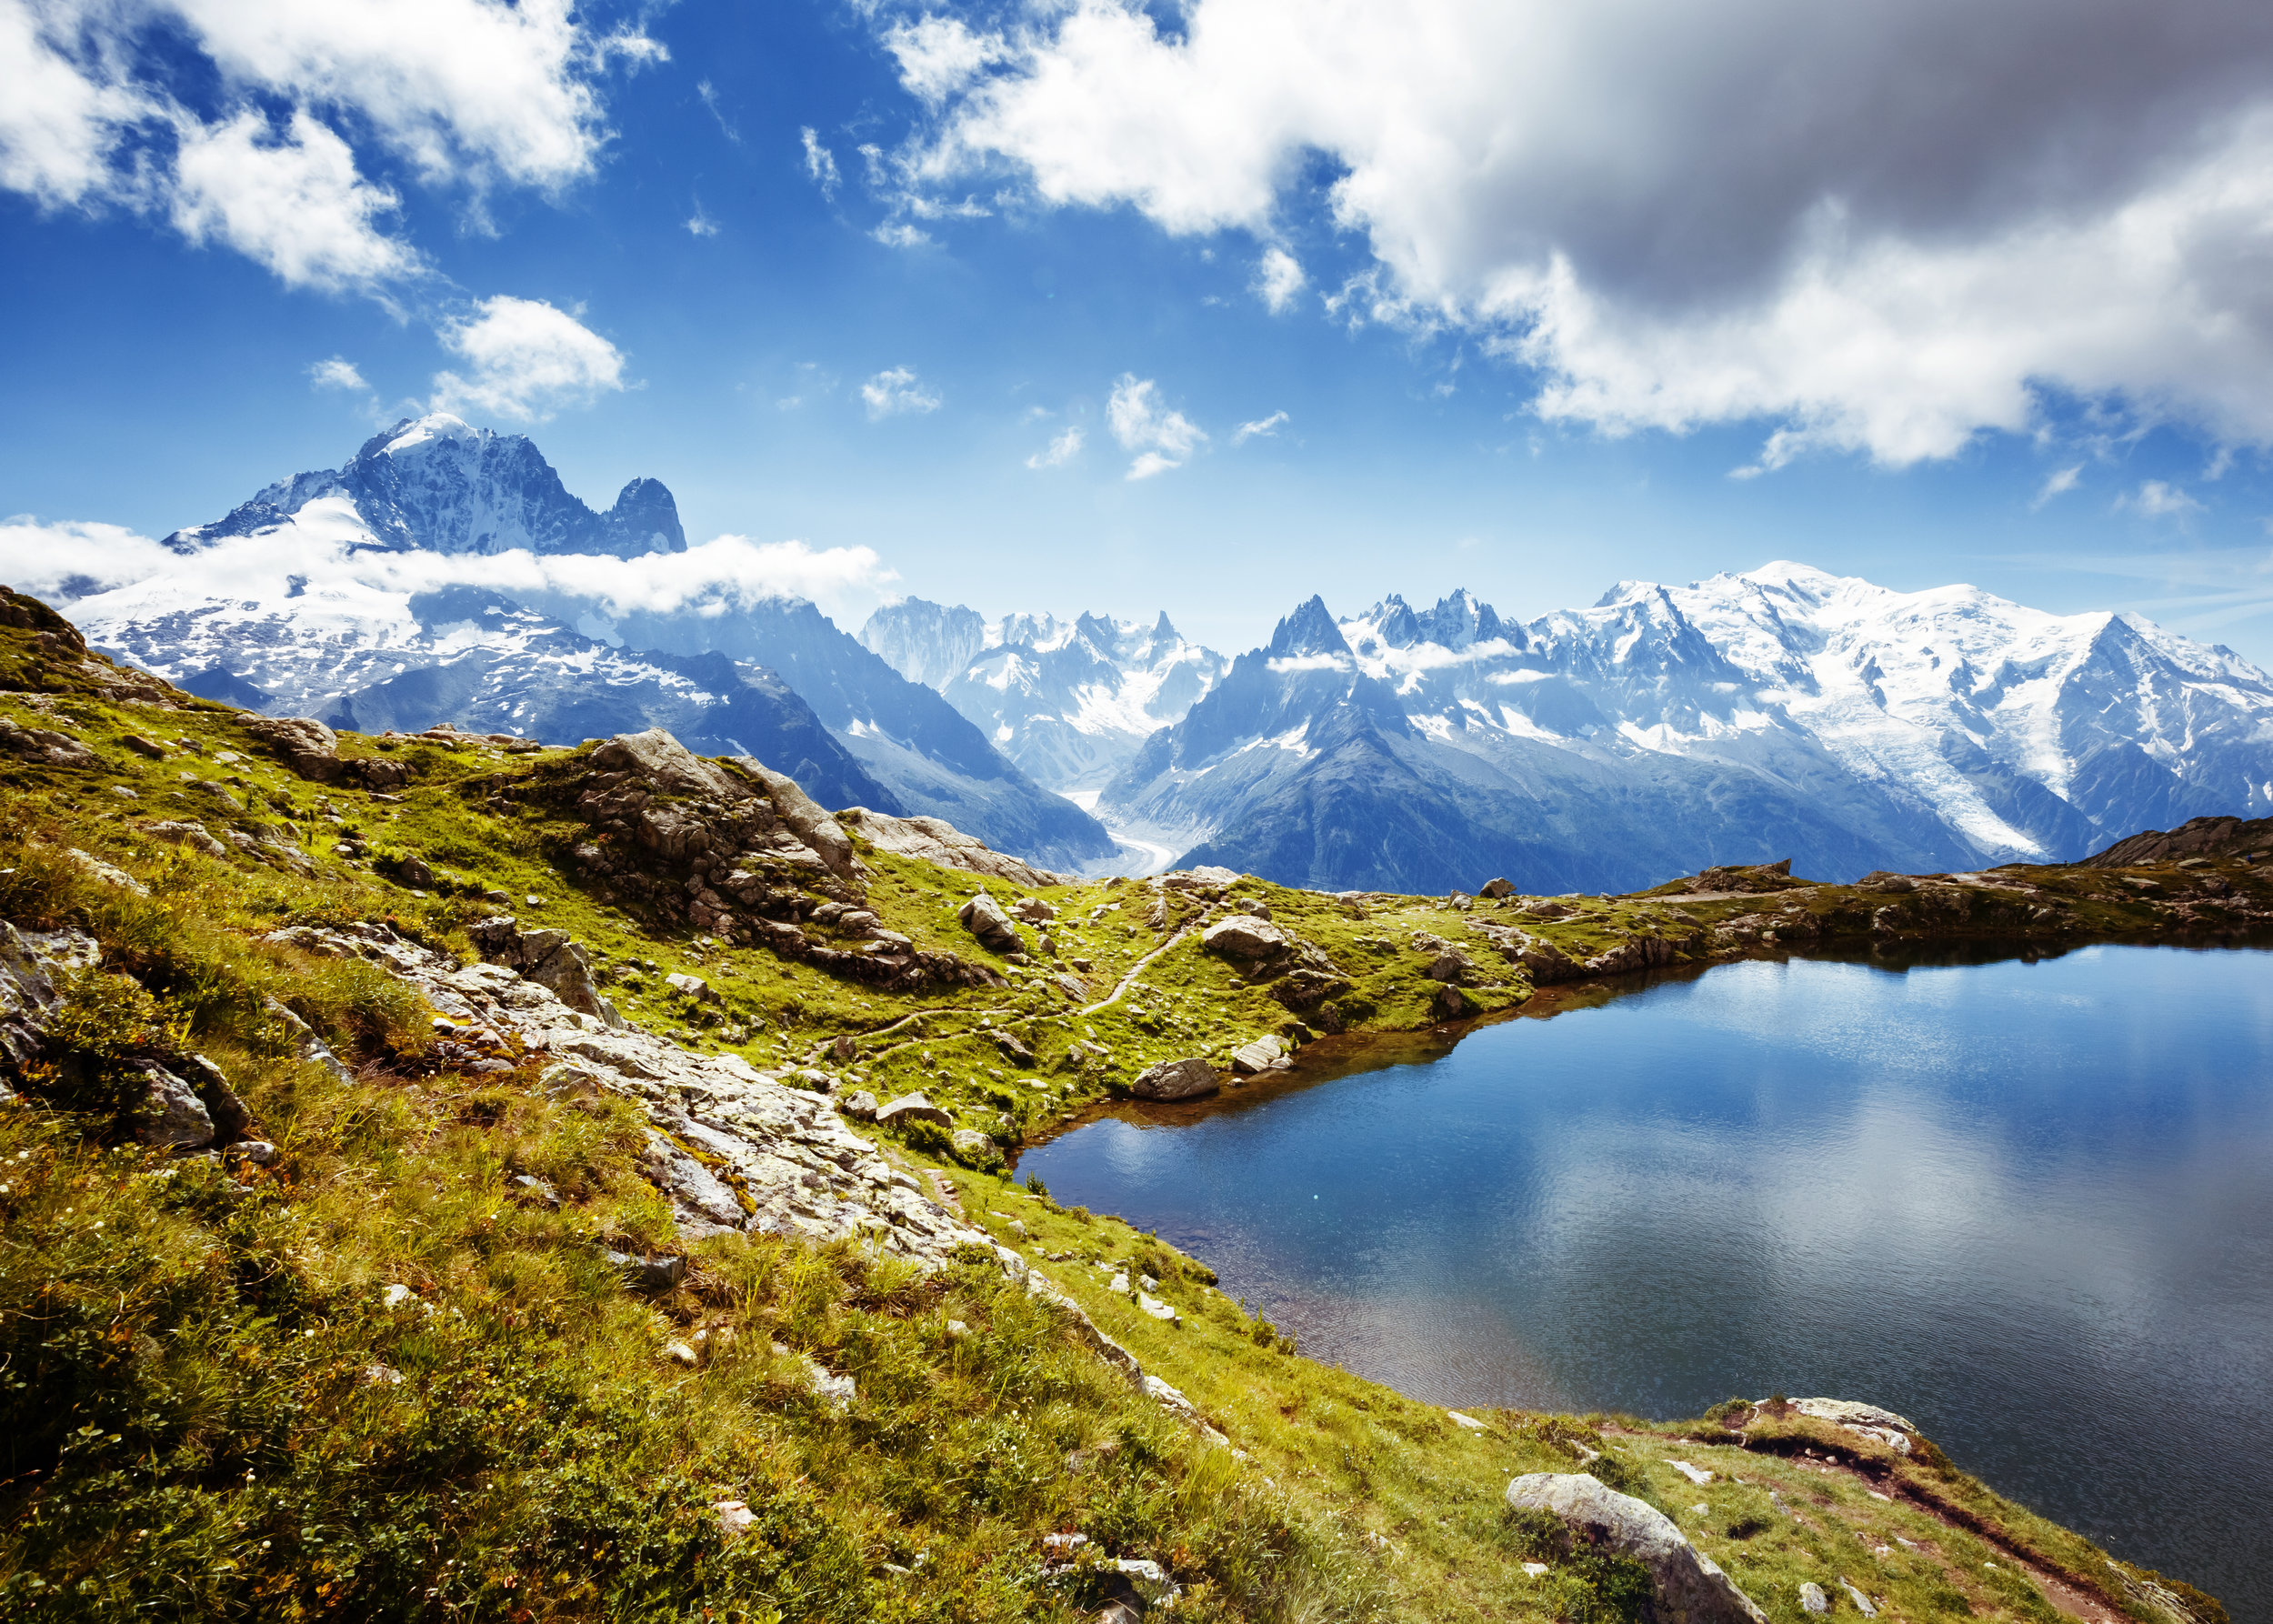 Mont Blanc Hotel Trek - Travel through France, Switzerland and Italy on one of the greatest walks in the world!Walking Grade: Grade 8